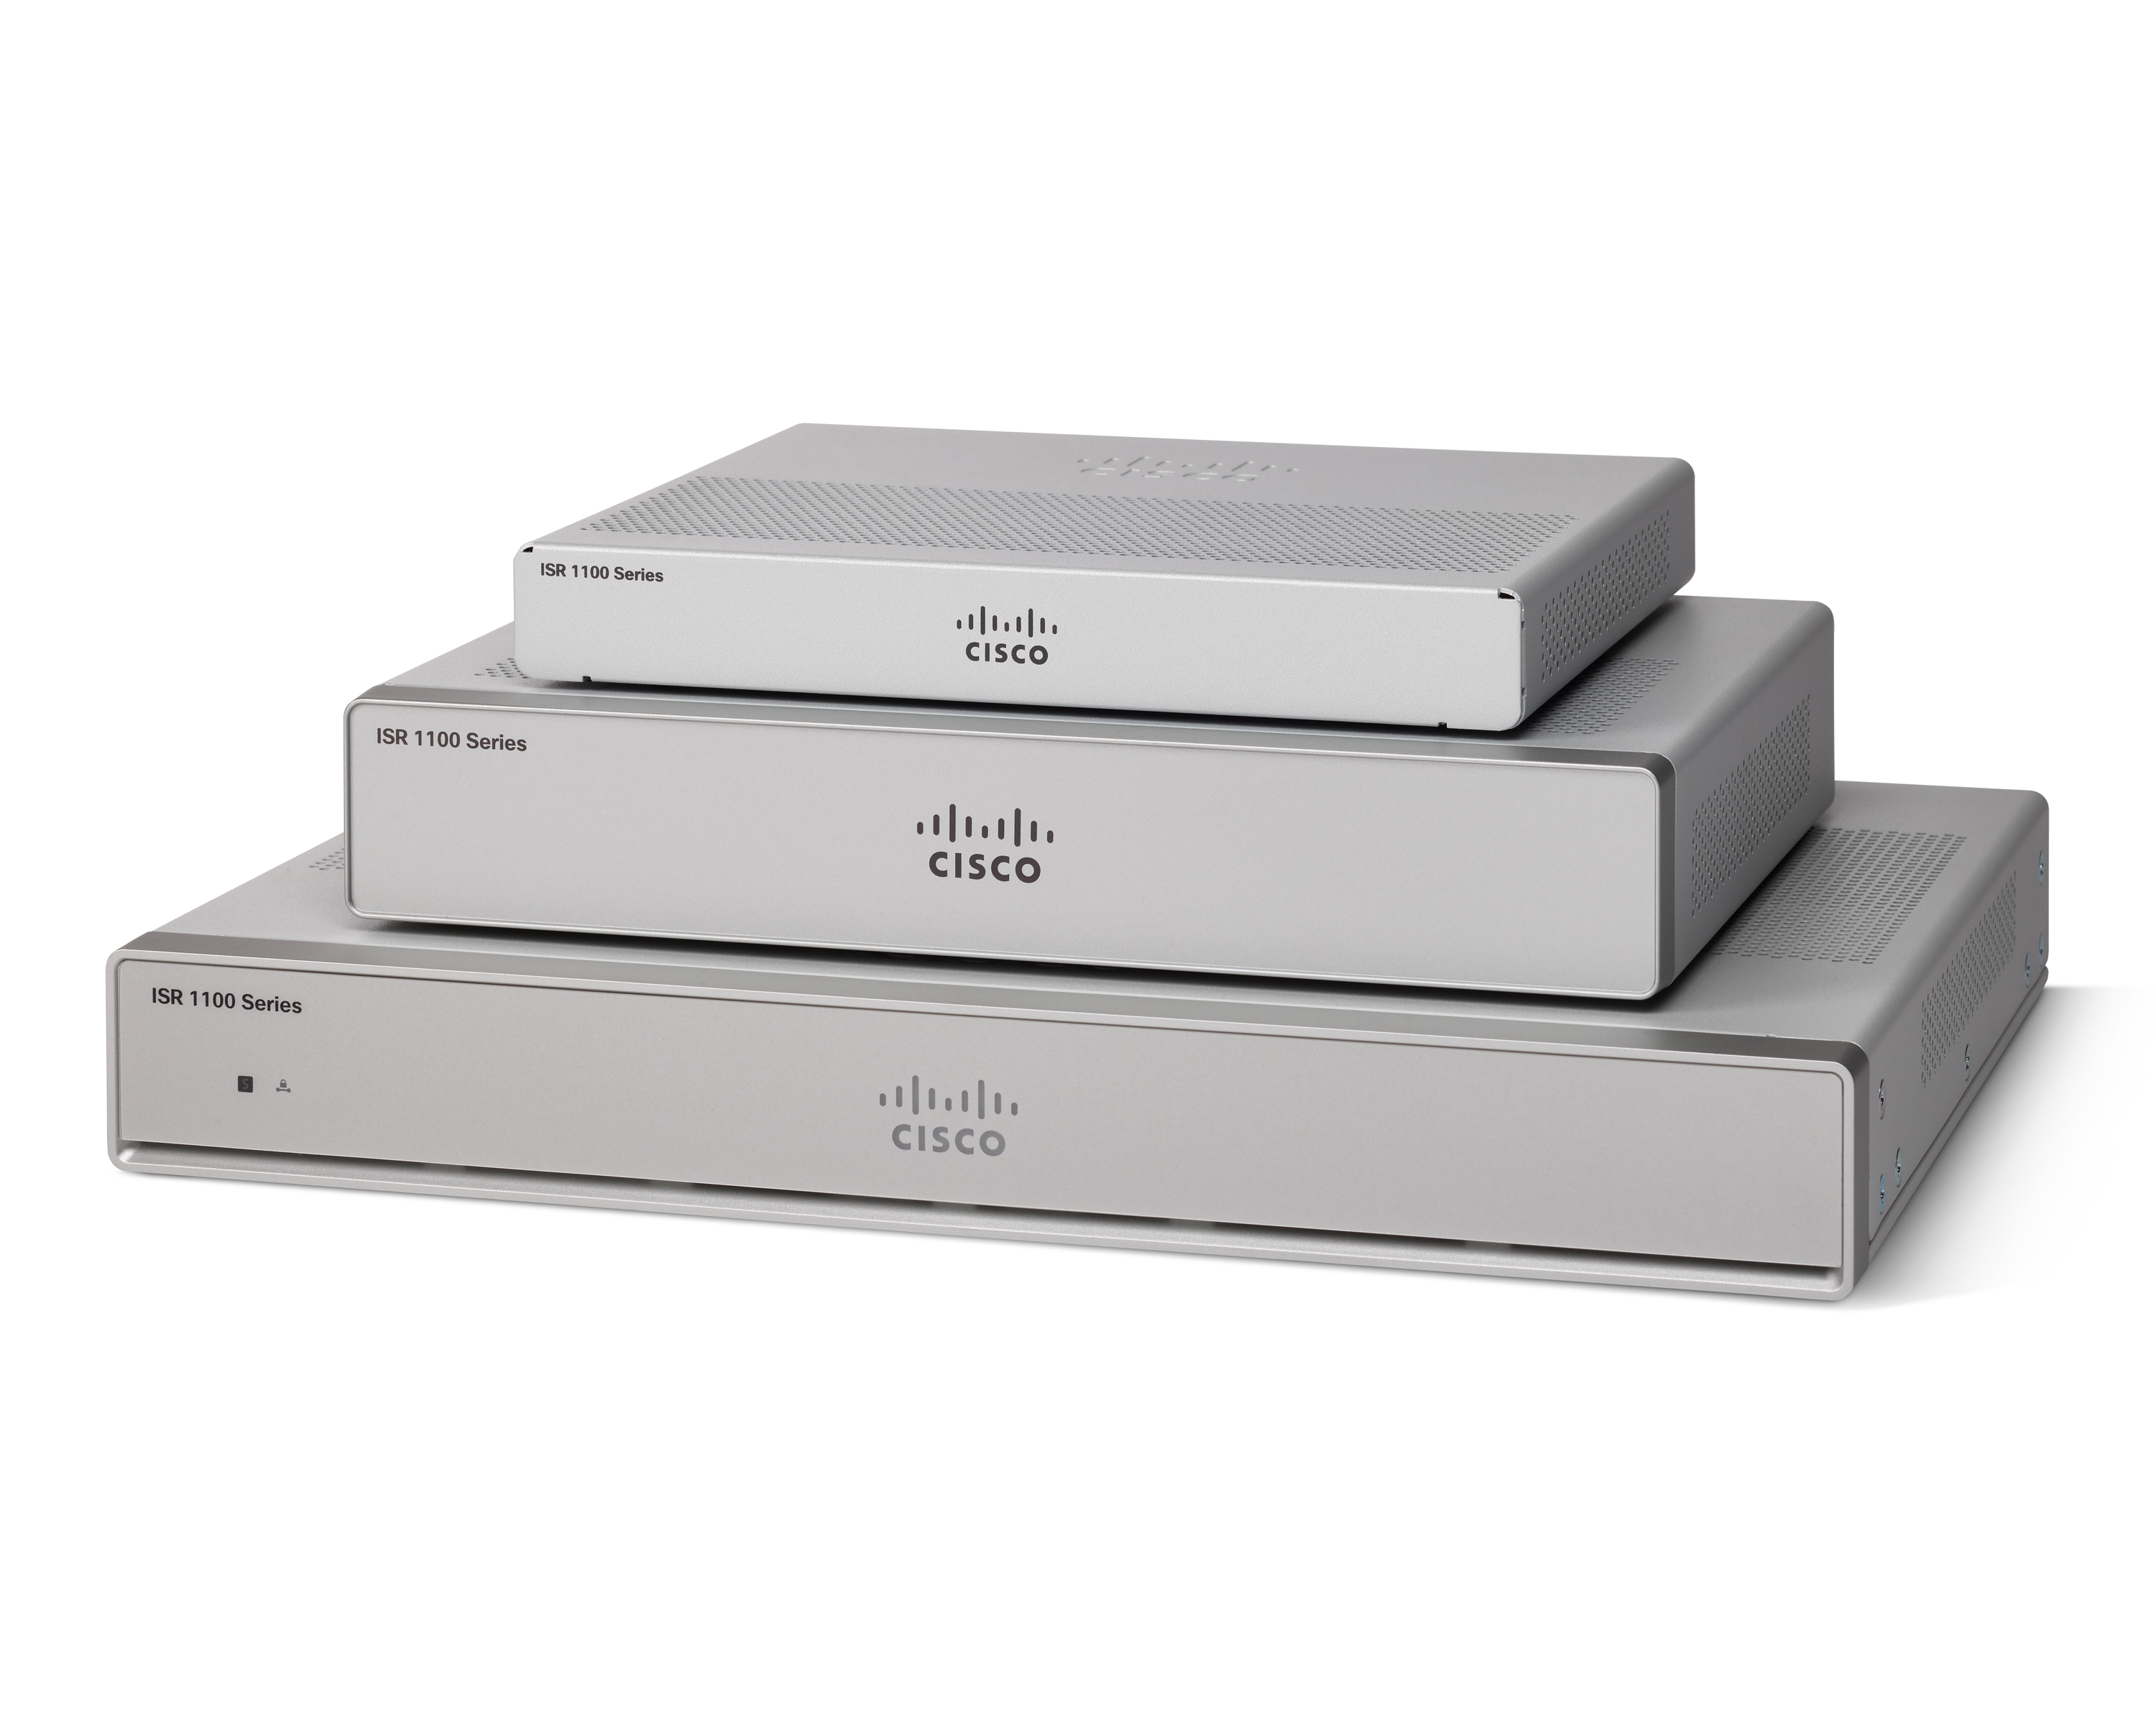 Miercom Verifies Performance Of Cisco Branch Office Routers Vs Huawei And Hpe Cisco Blogs